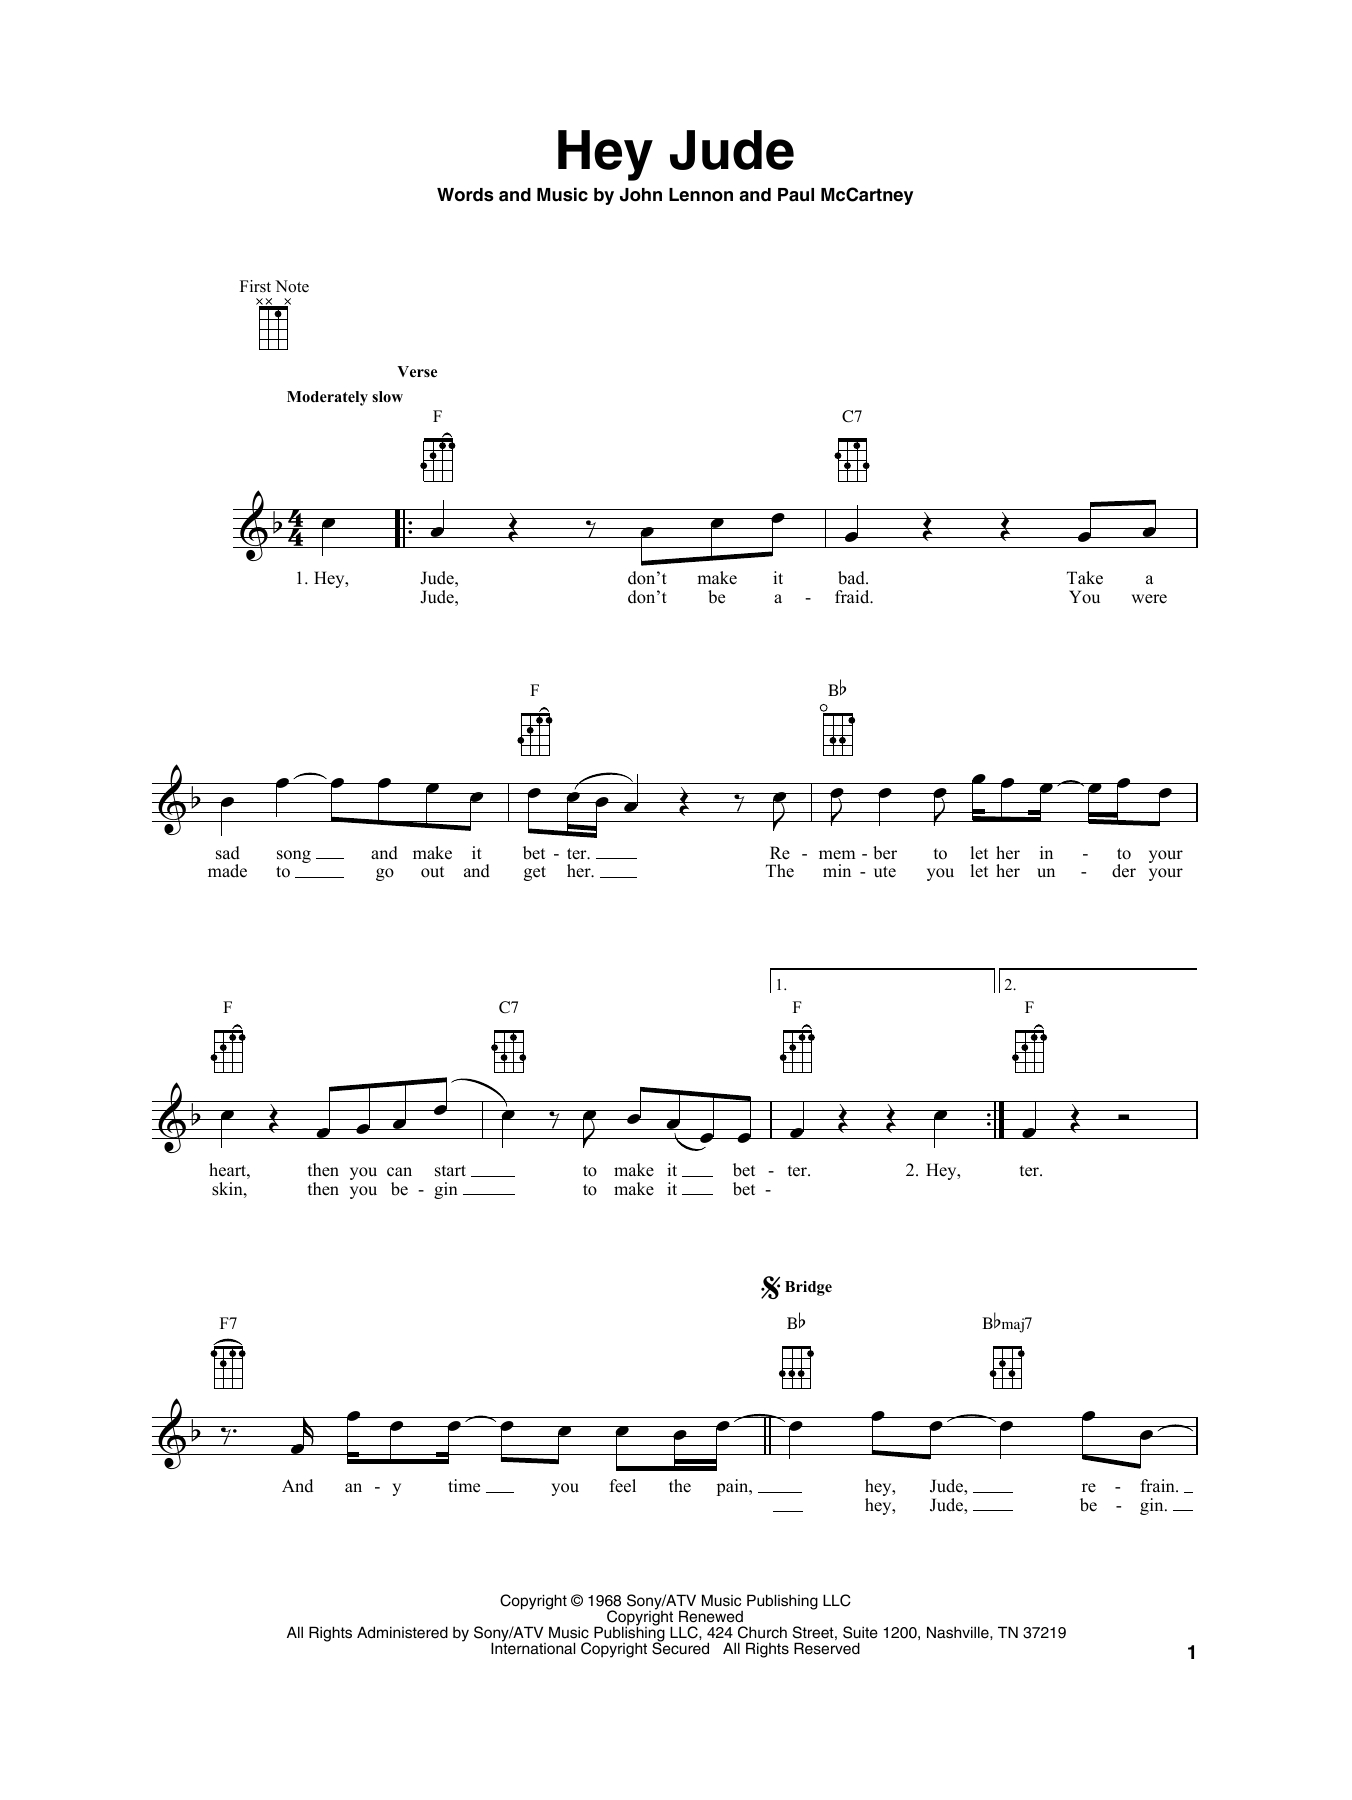 Hey Jude Chords Sheet Music Digital Files To Print Licensed The Beatles Digital